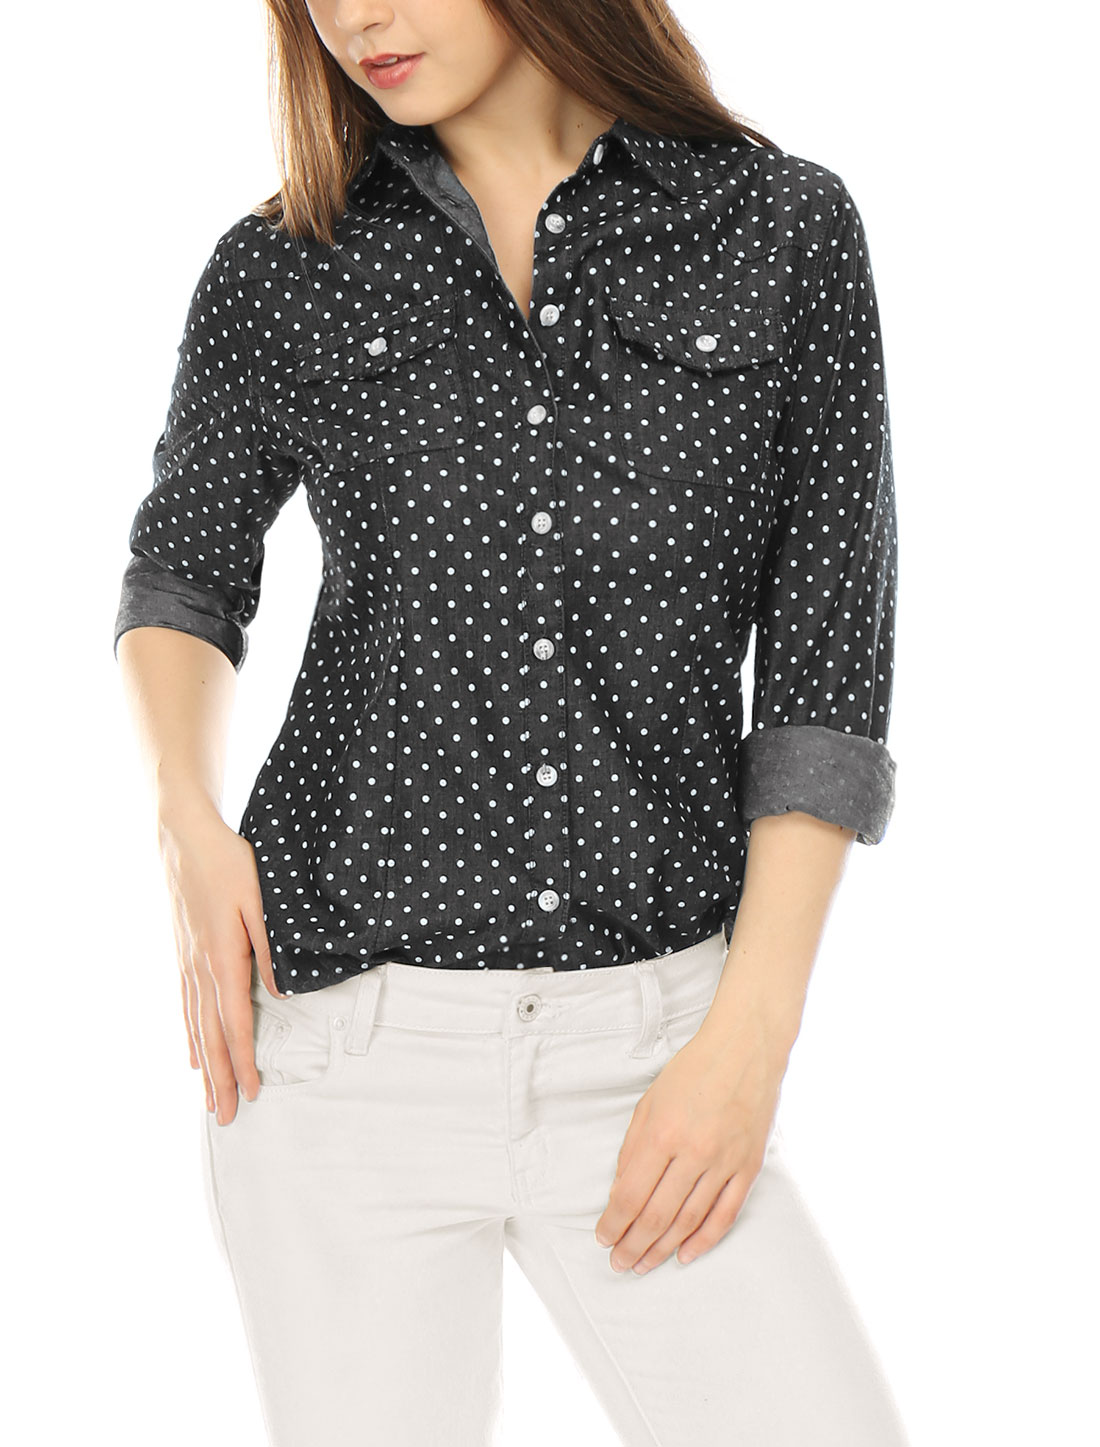 Allegra K Women Dots Point Collar Chest Pockets Button Down Shirt Black S